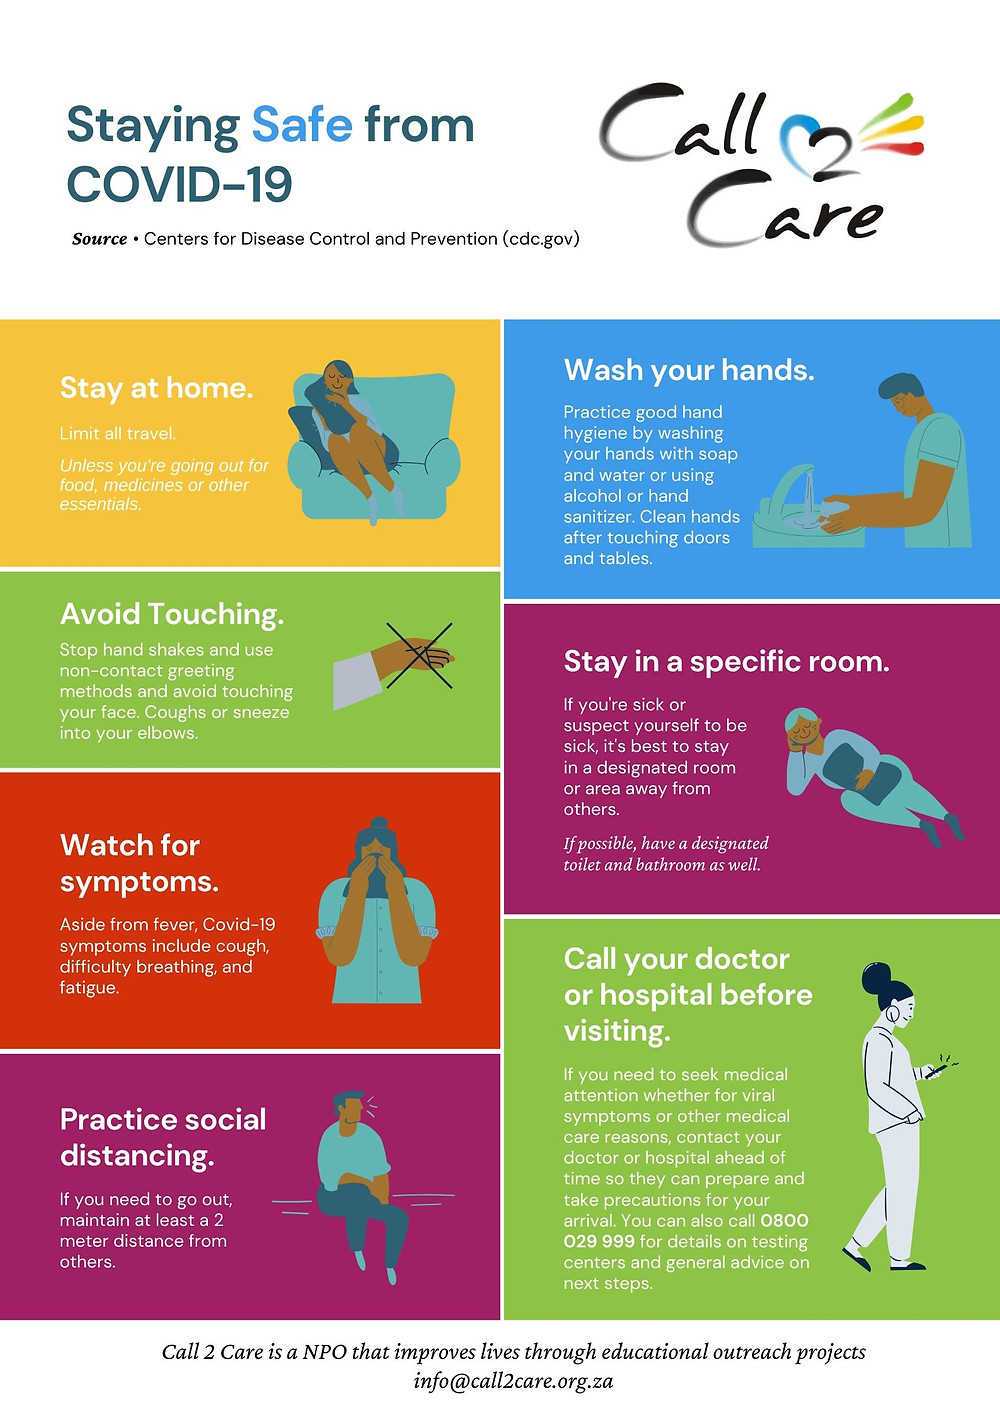 Staying Safe from COVID-19 South Africa Infographic Poster based on the recommendations from the Centers of Disease Control and Prevention